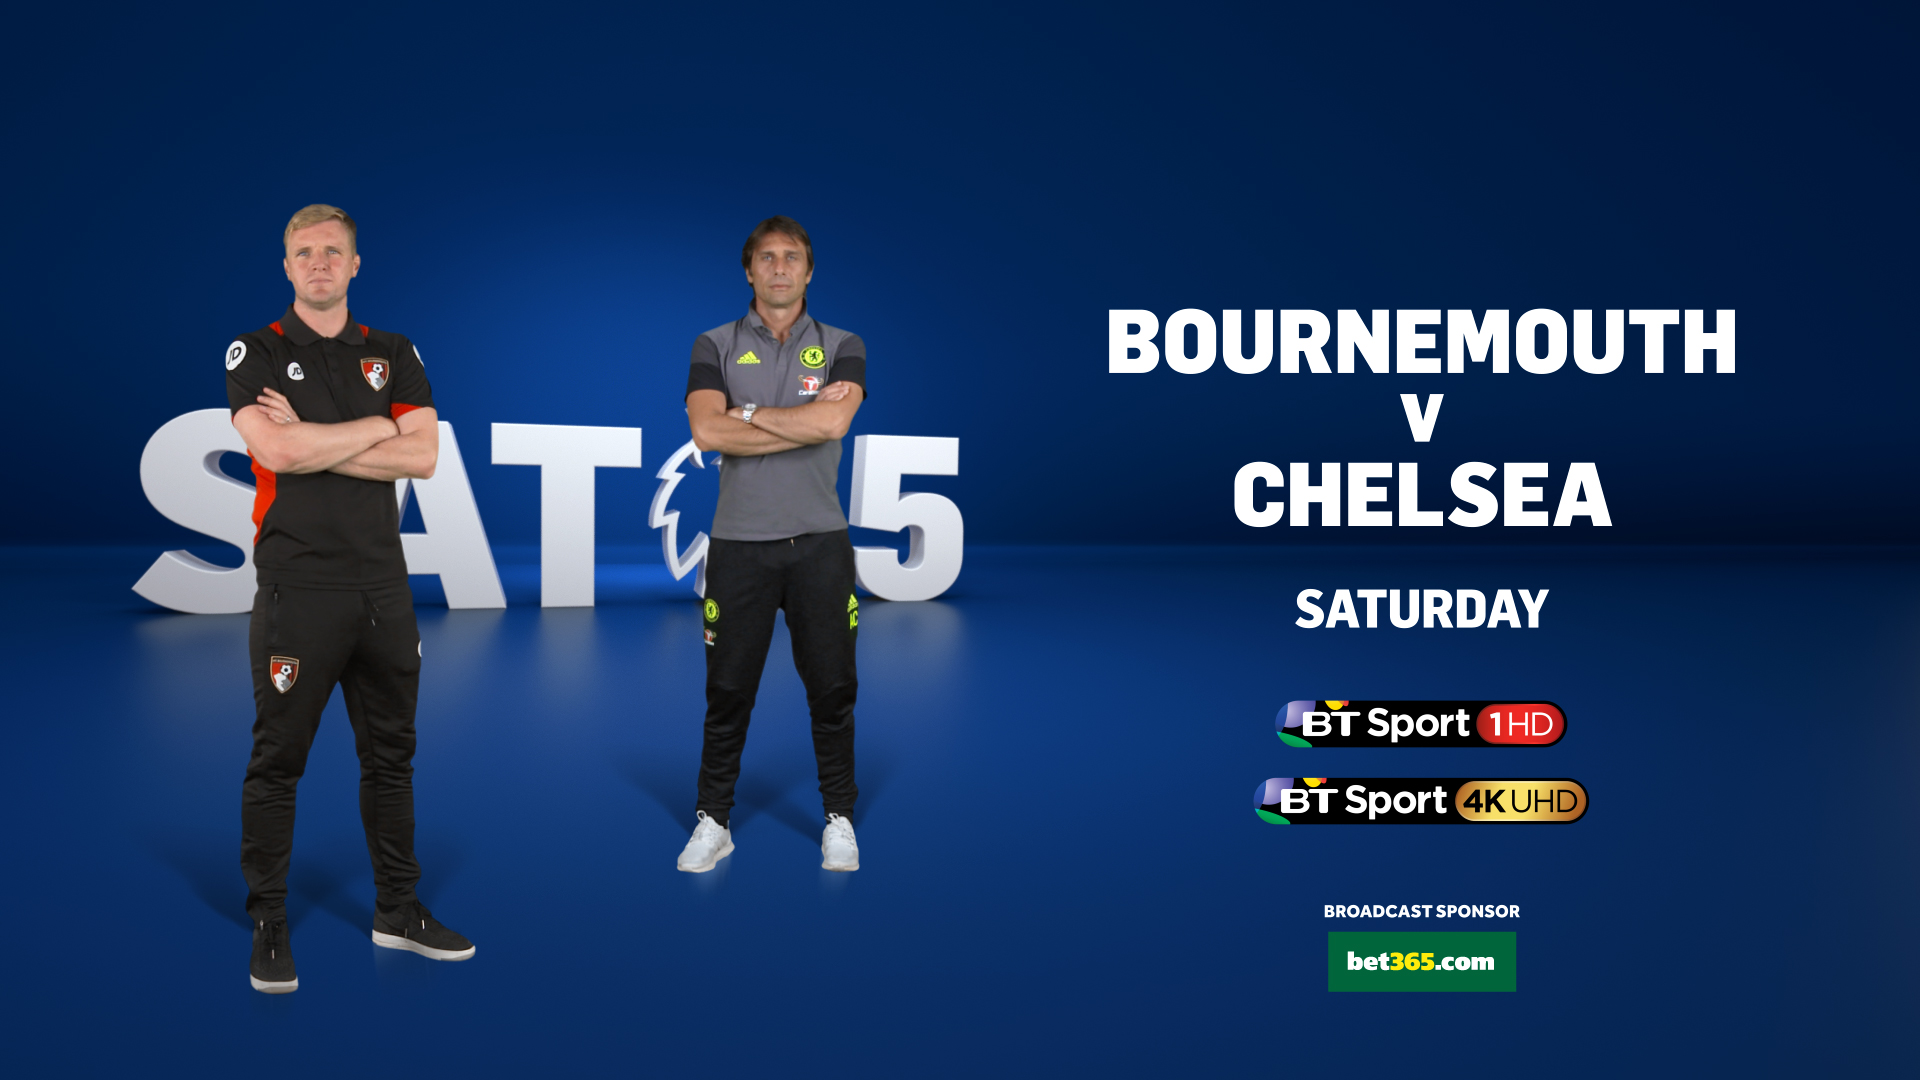 Bournemouth vs Chelsea graphics 6